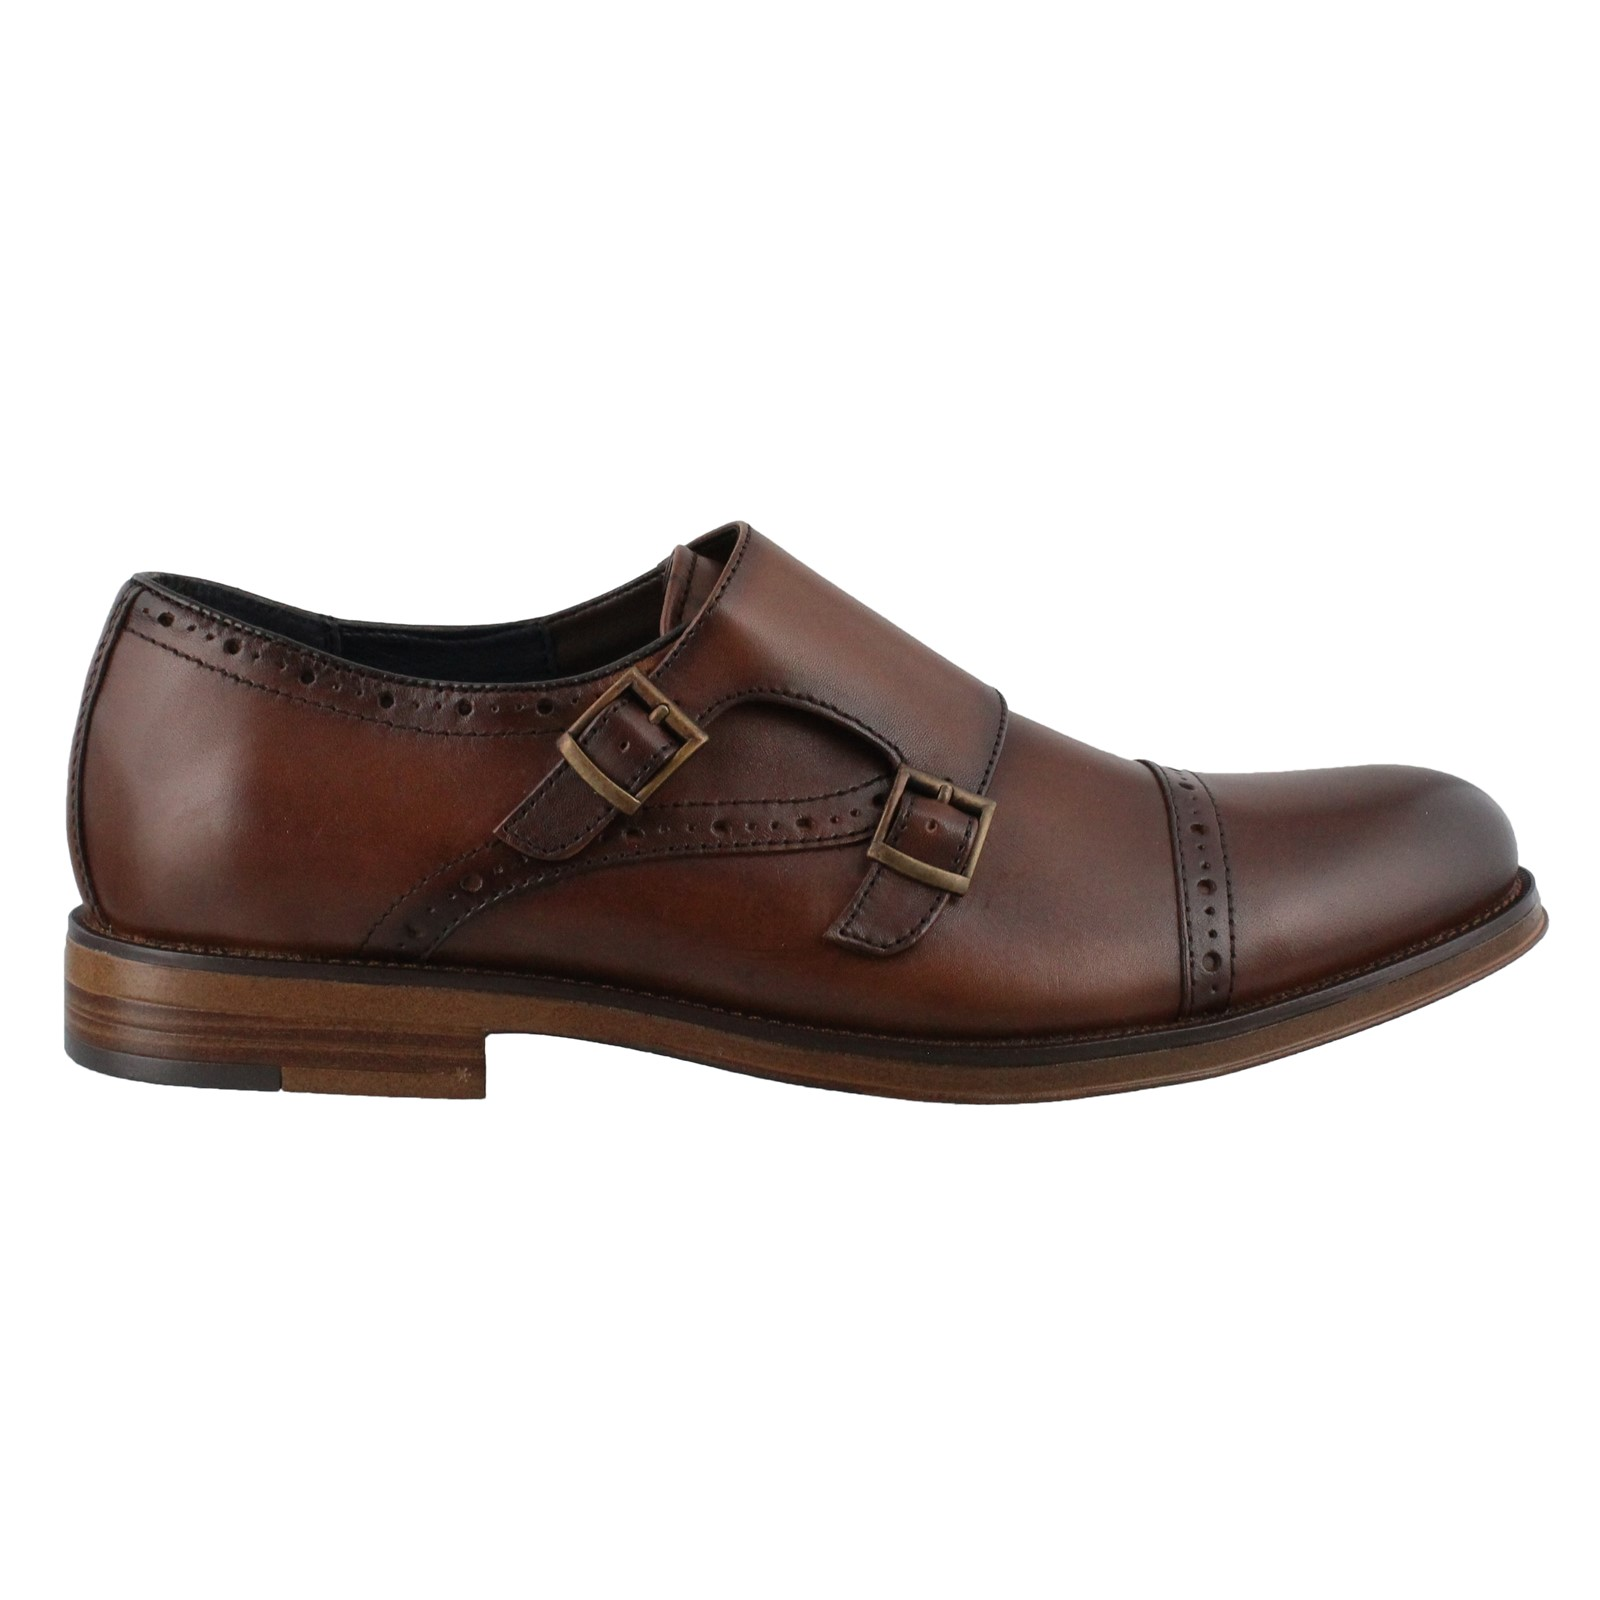 Men's Dockers, Maycrest Shoes